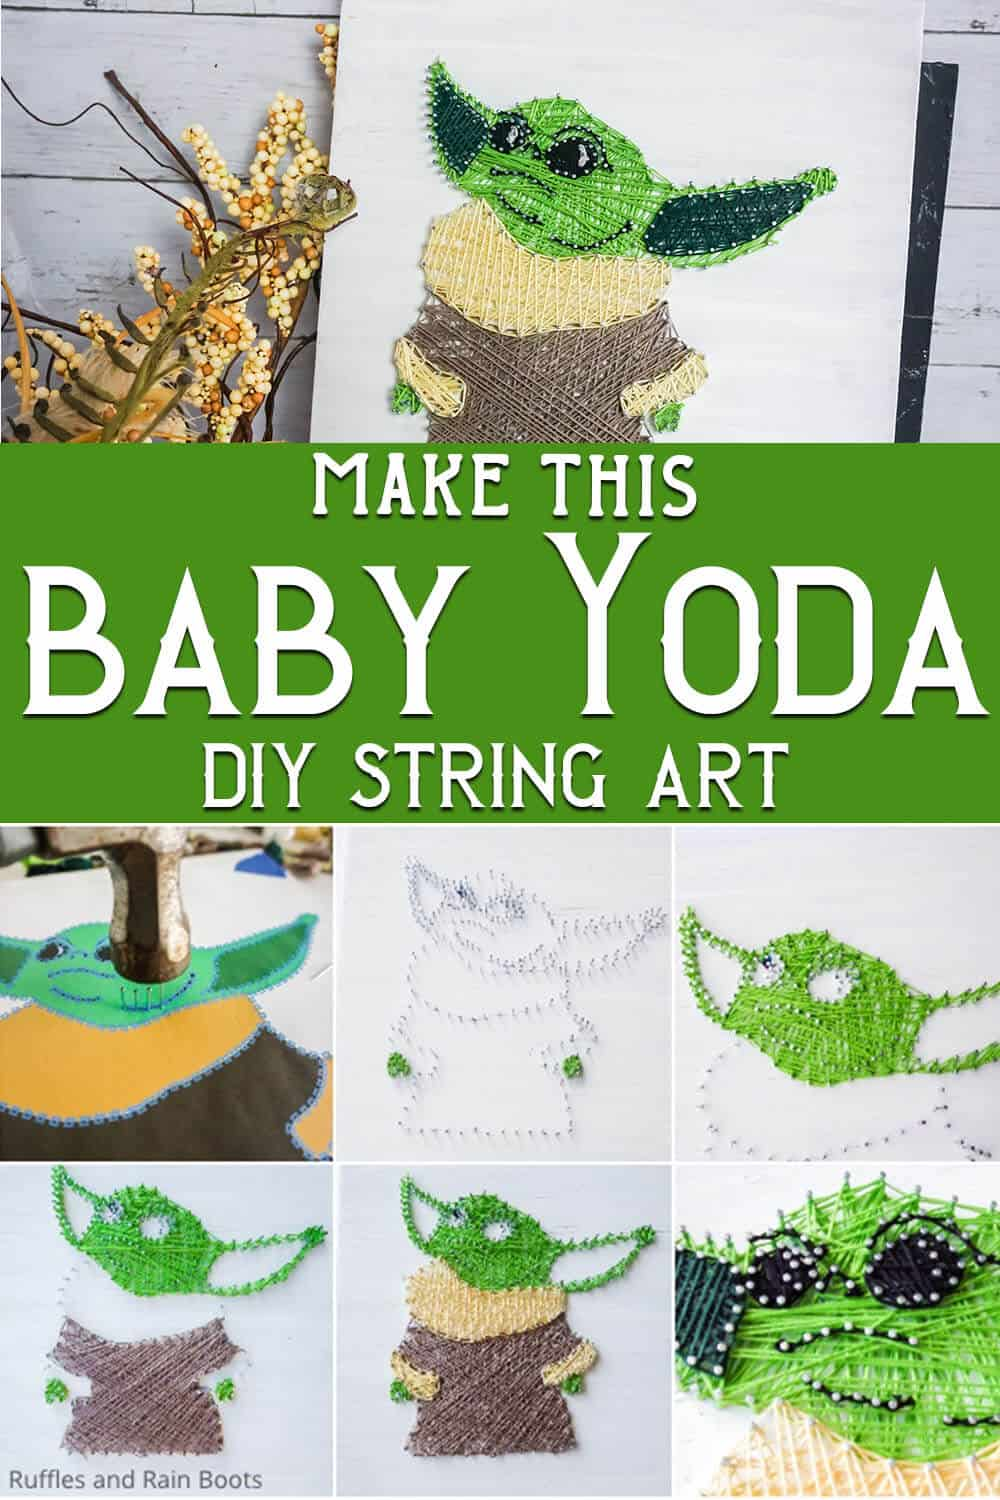 photo collage of simple string art baby yoda craft with text which reads make this baby yoda diy string art